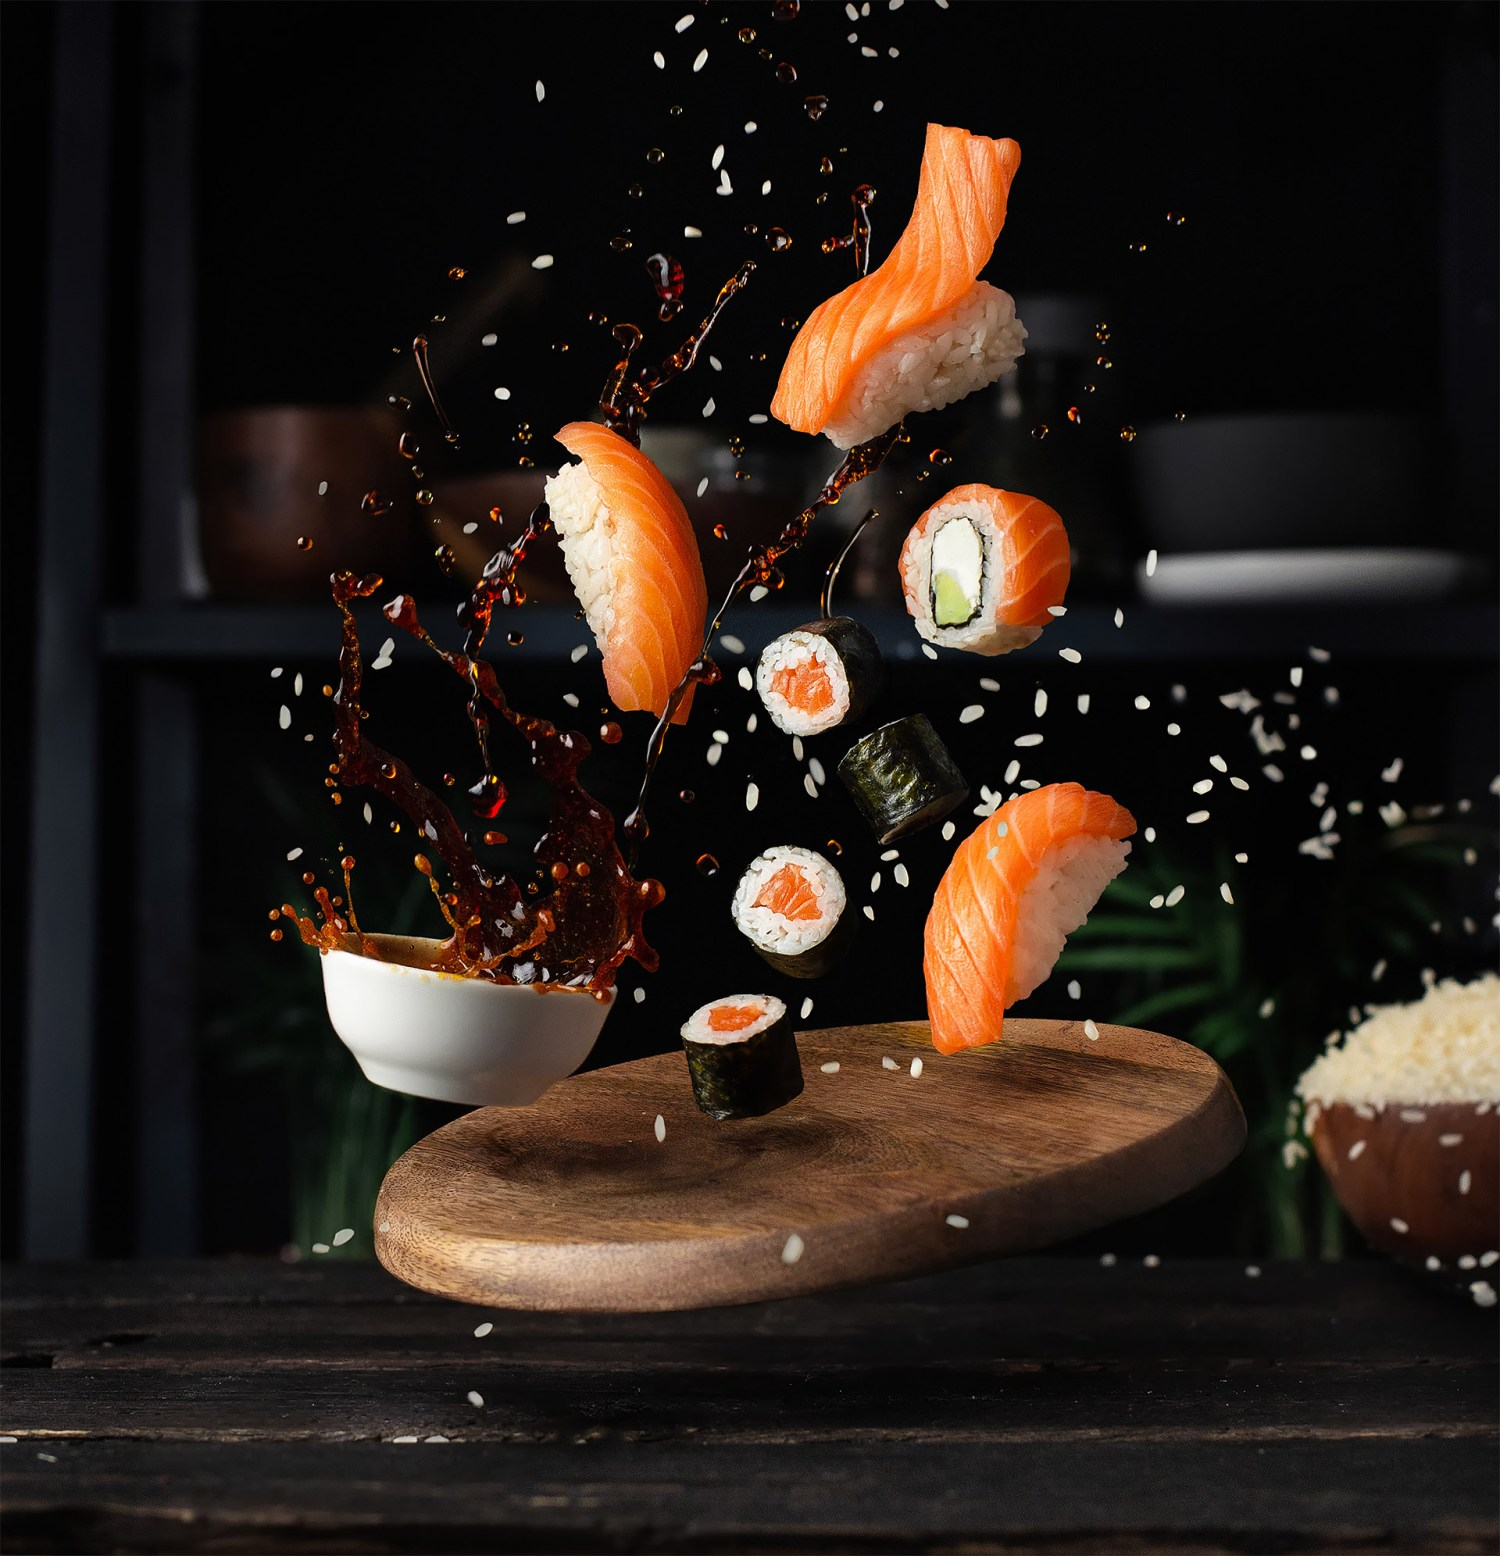 creative food photography ideas sushi by pavel sablya